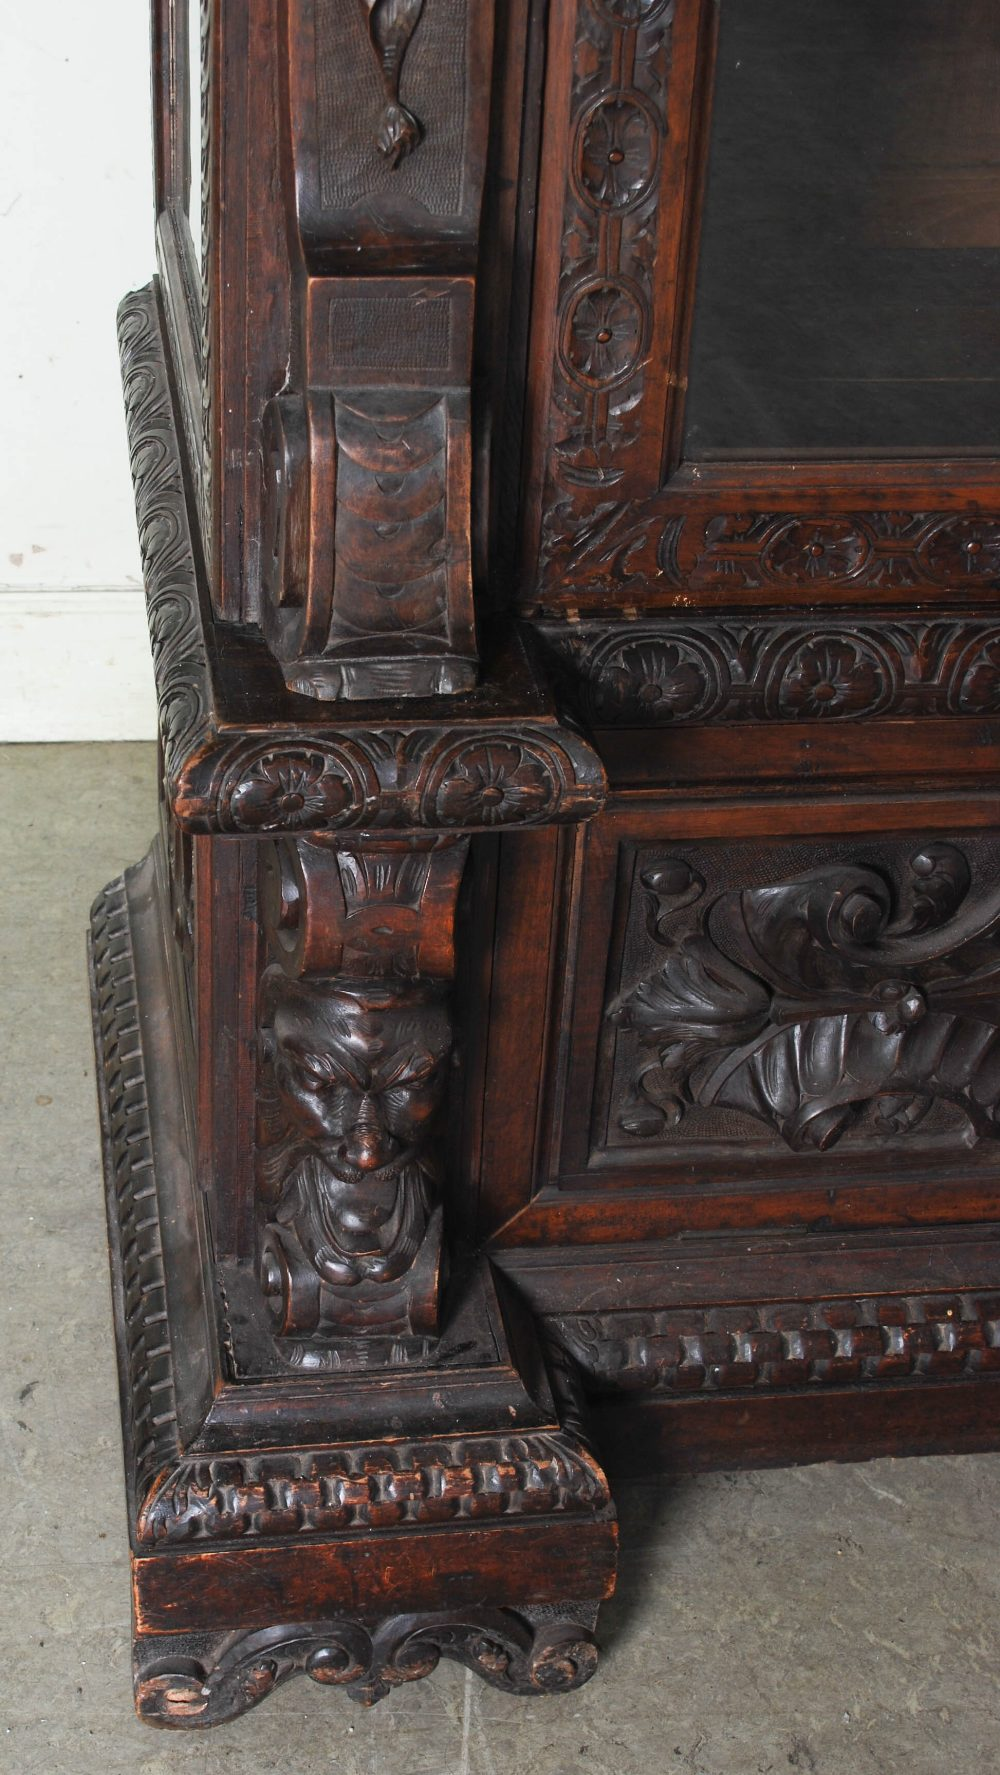 Lot 77 - A late 19th century stained oak display cabinet, with acanthus carved and dentil cornice above a